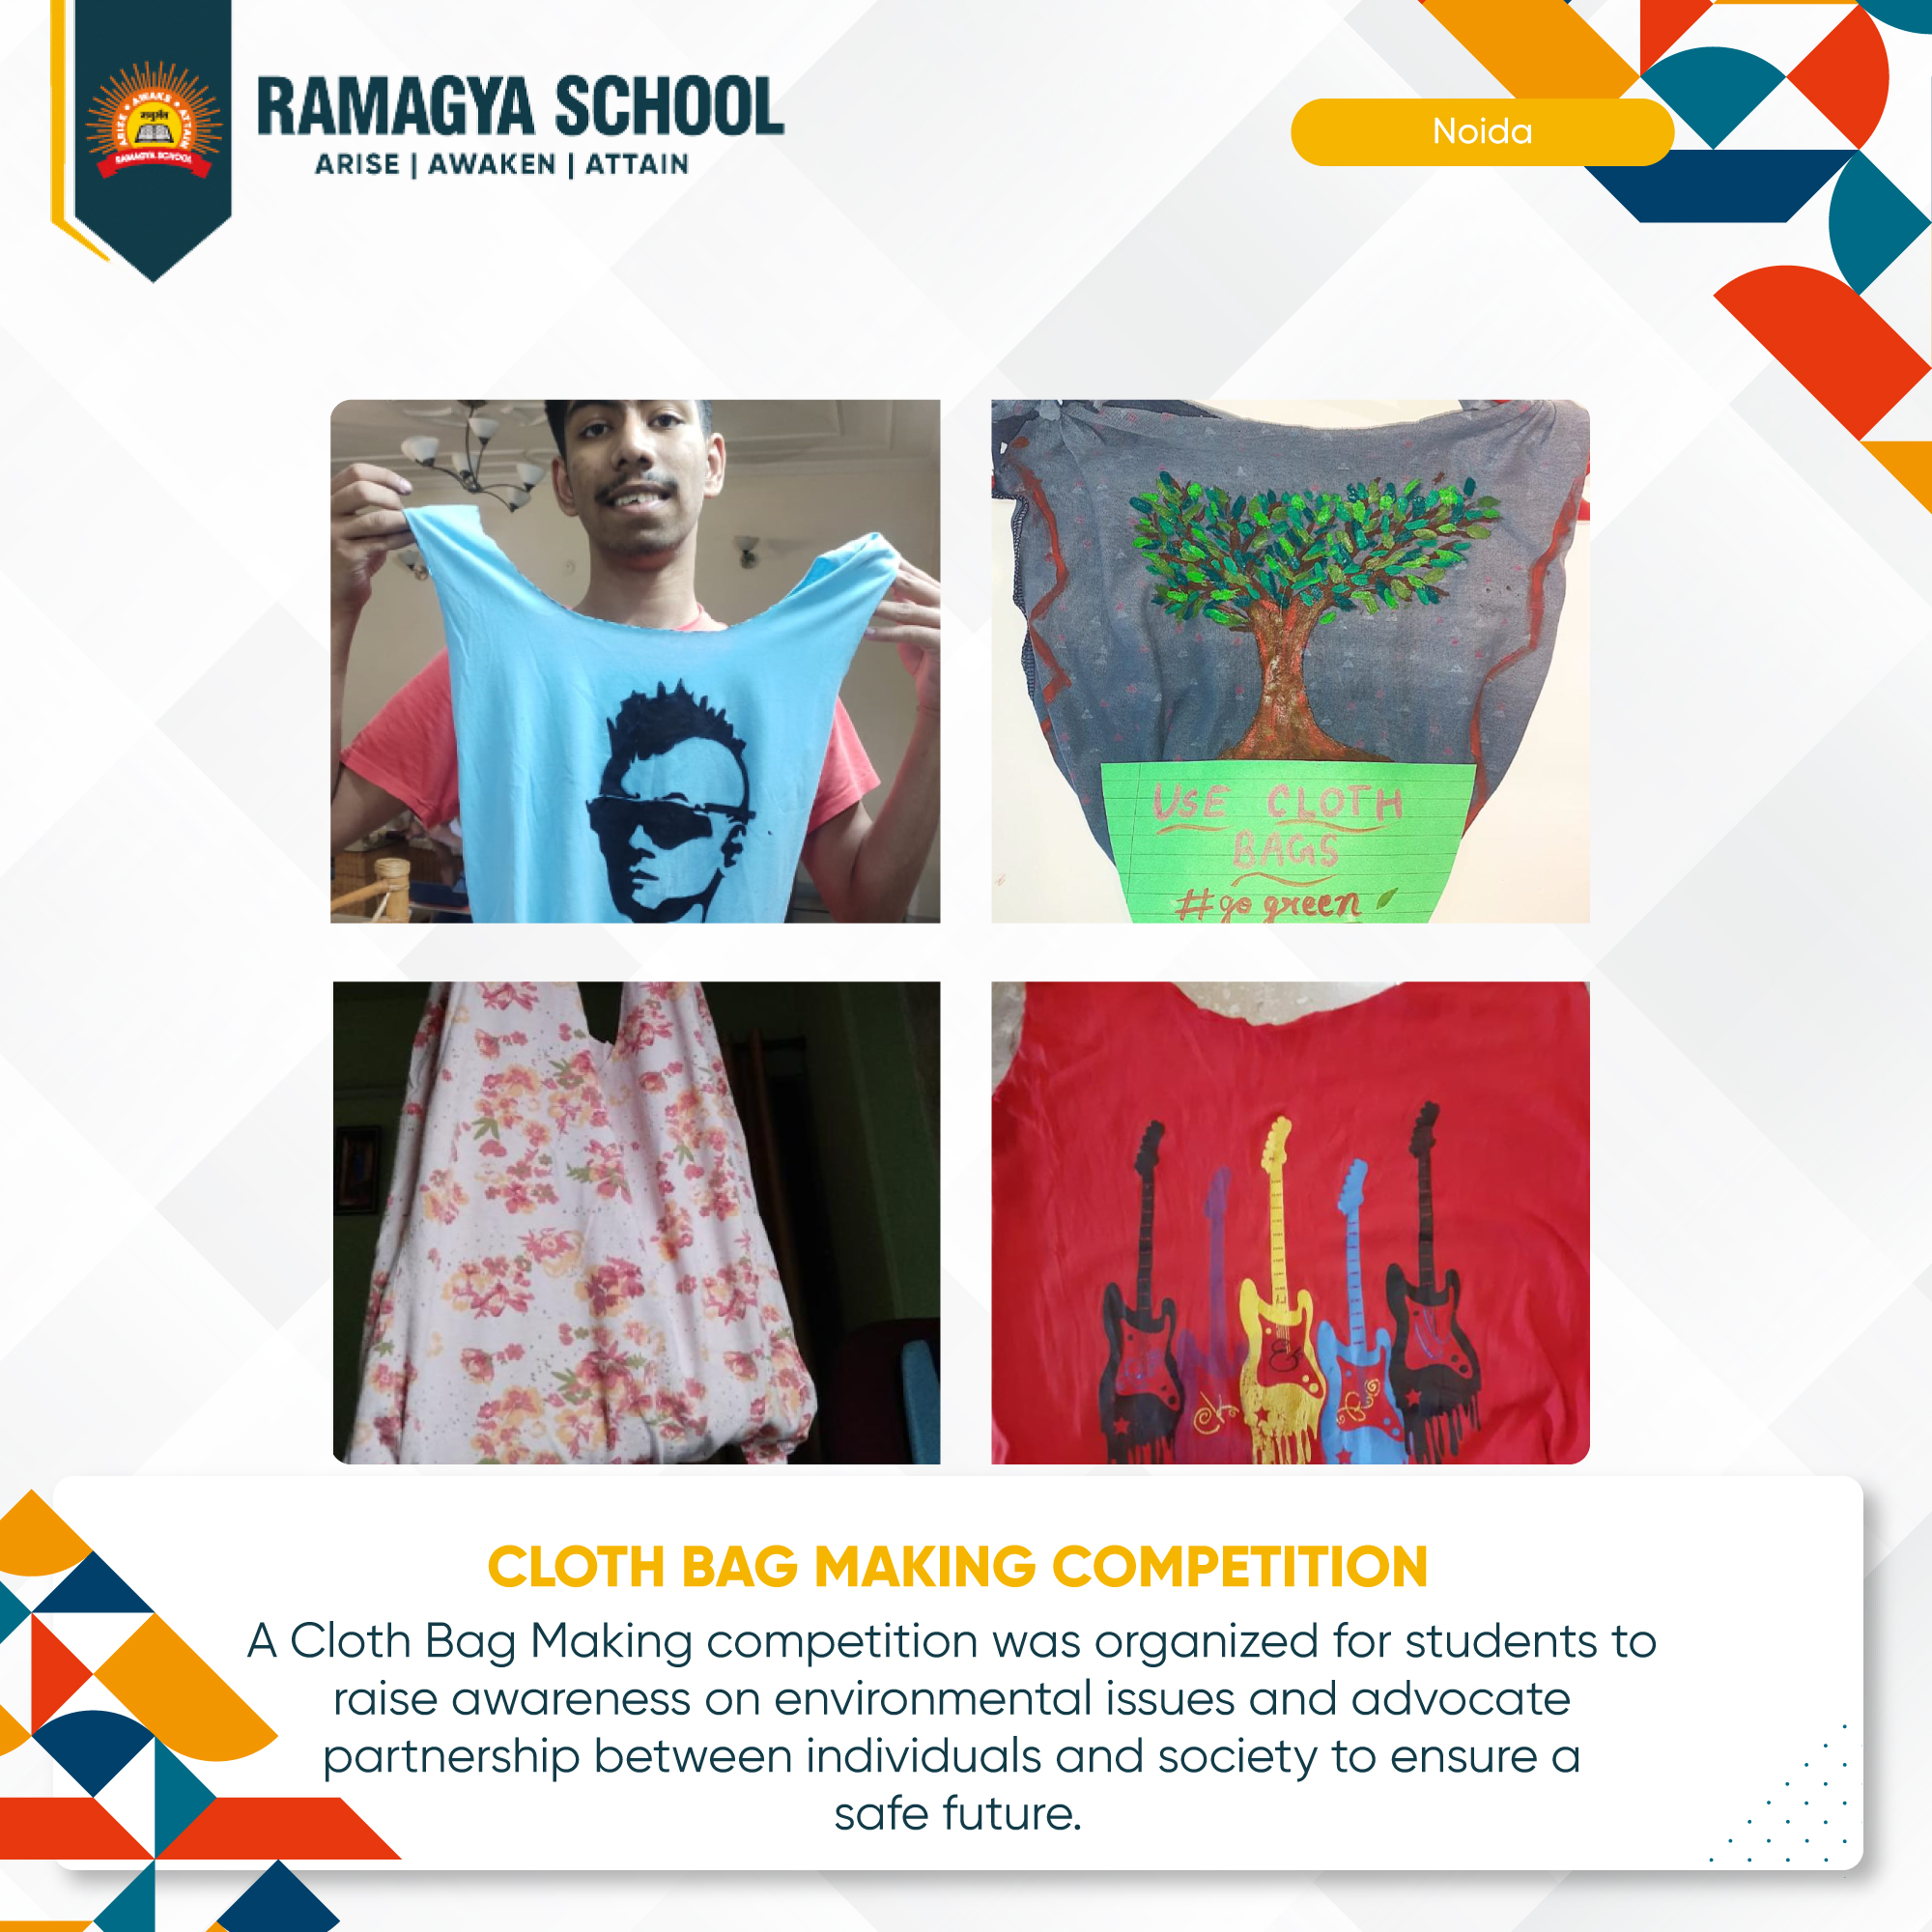 CLOTH BAG MAKING COMPETITION